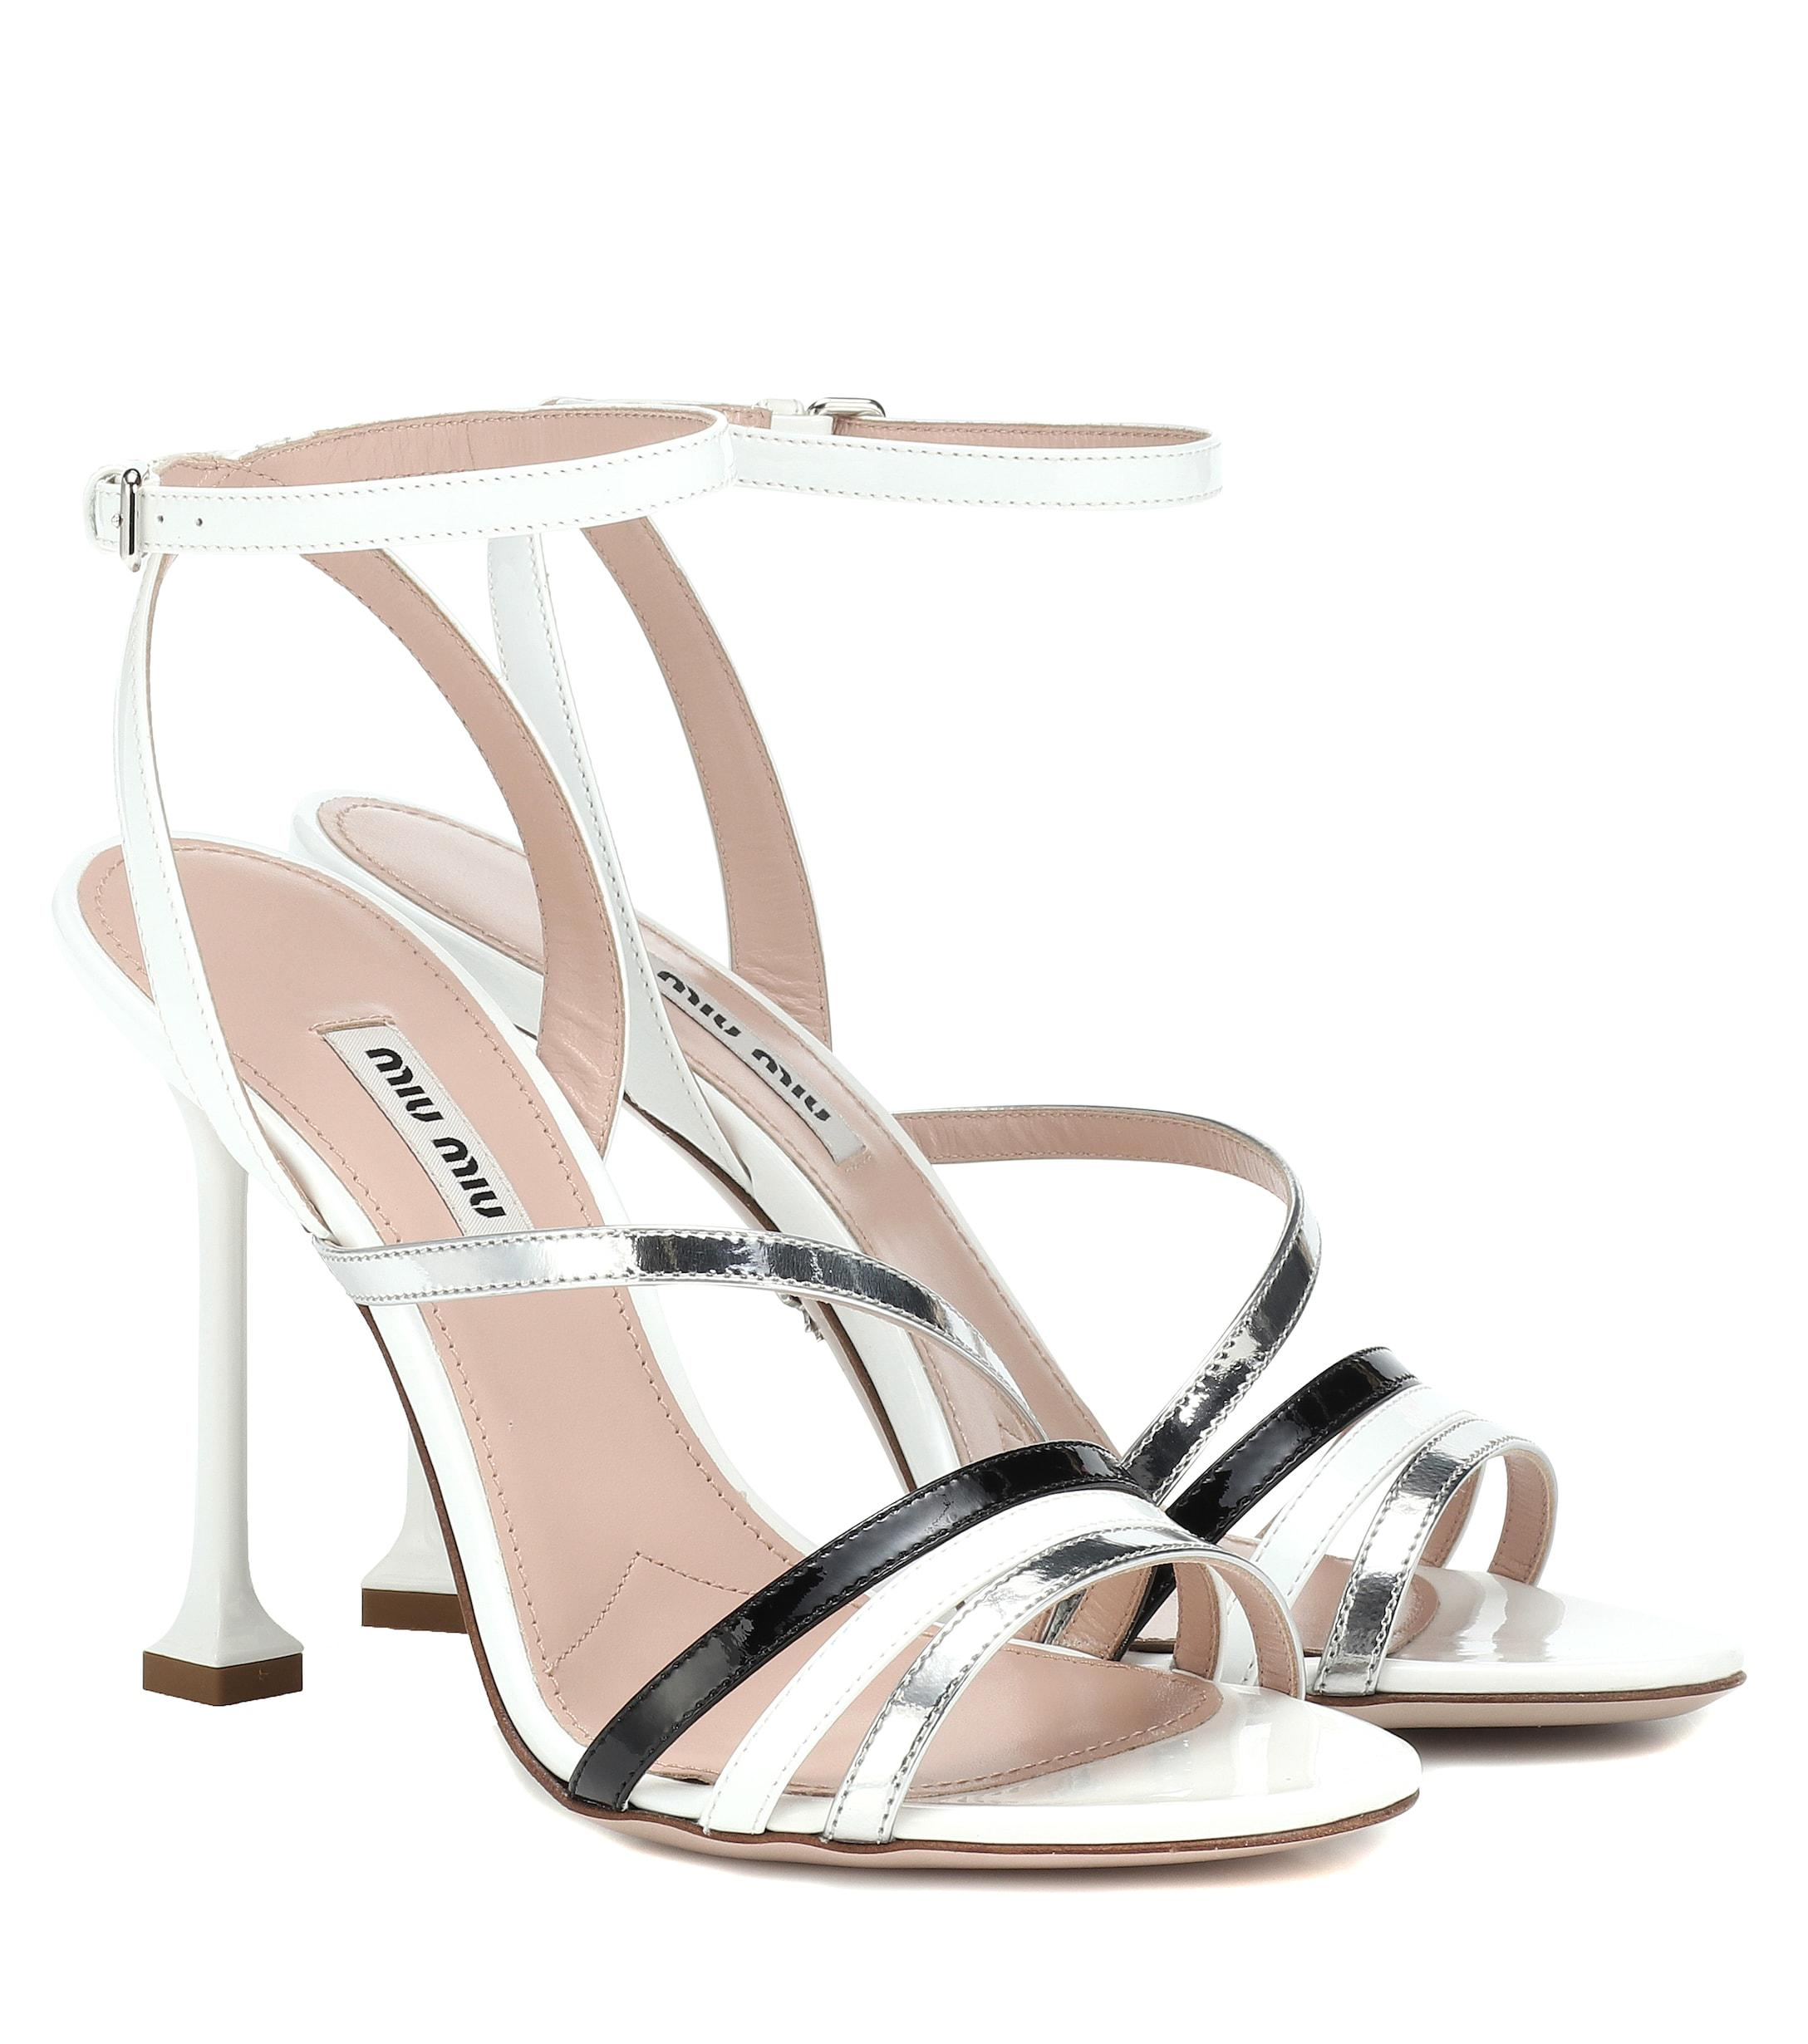 c8f6dce9cd1e Miu Miu. Women s Patent Leather Sandals.  750 From Mytheresa. Free shipping  ...